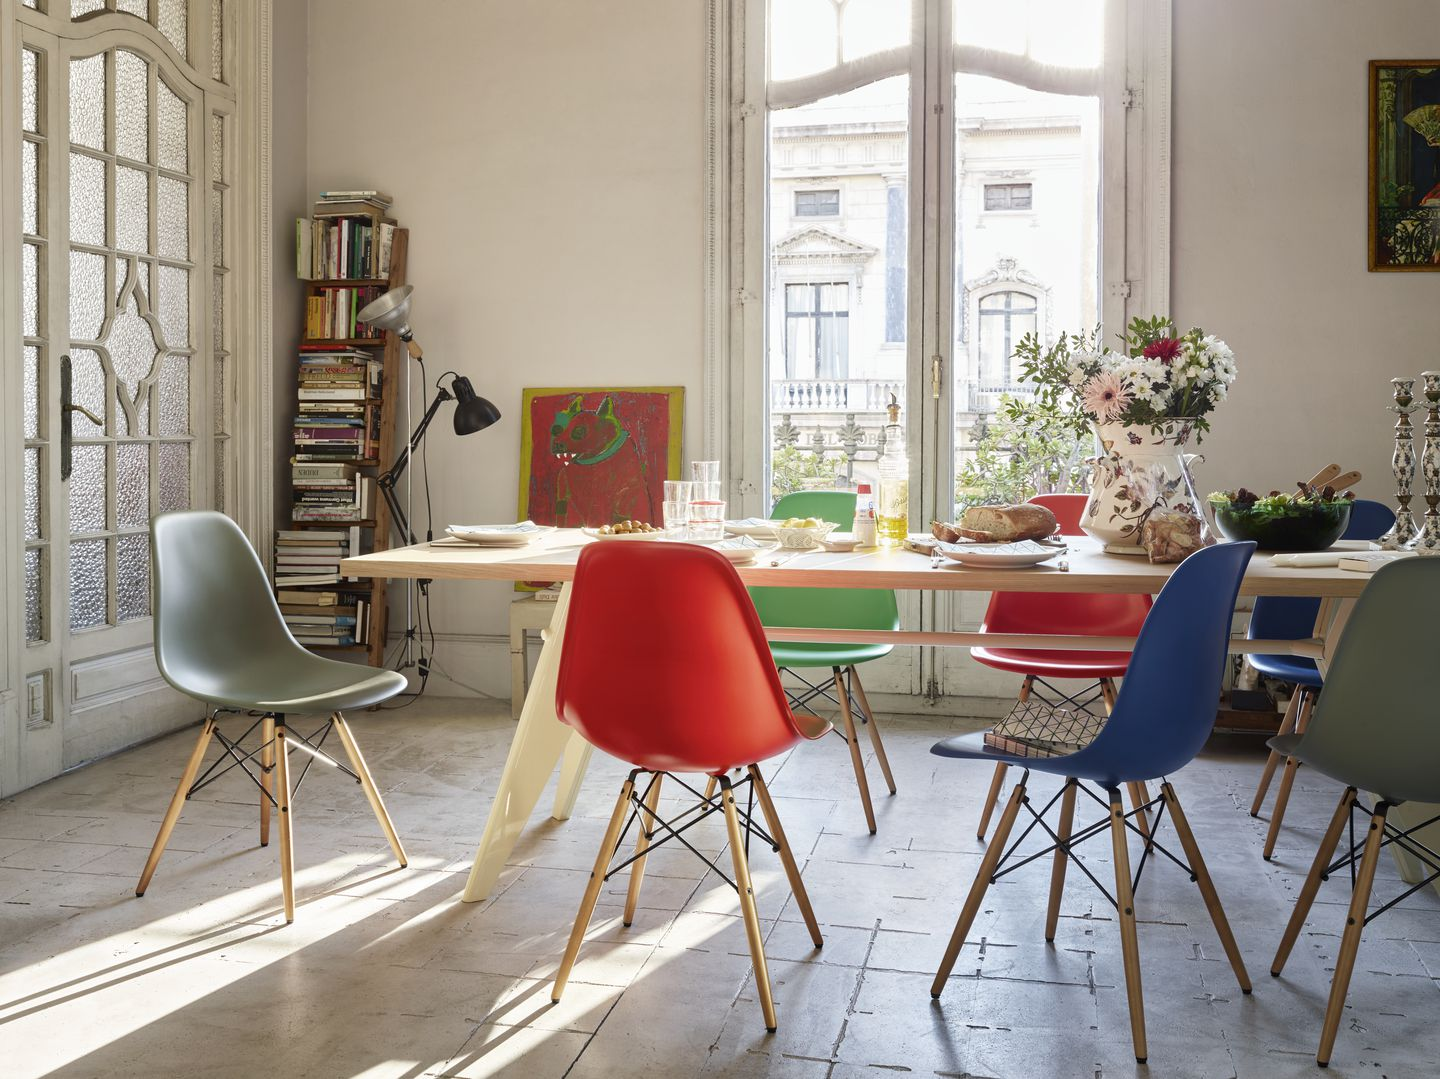 http://cdn.home-designing.com/wp-content/uploads/2015/08/primary-color-dining-chairs.jpg